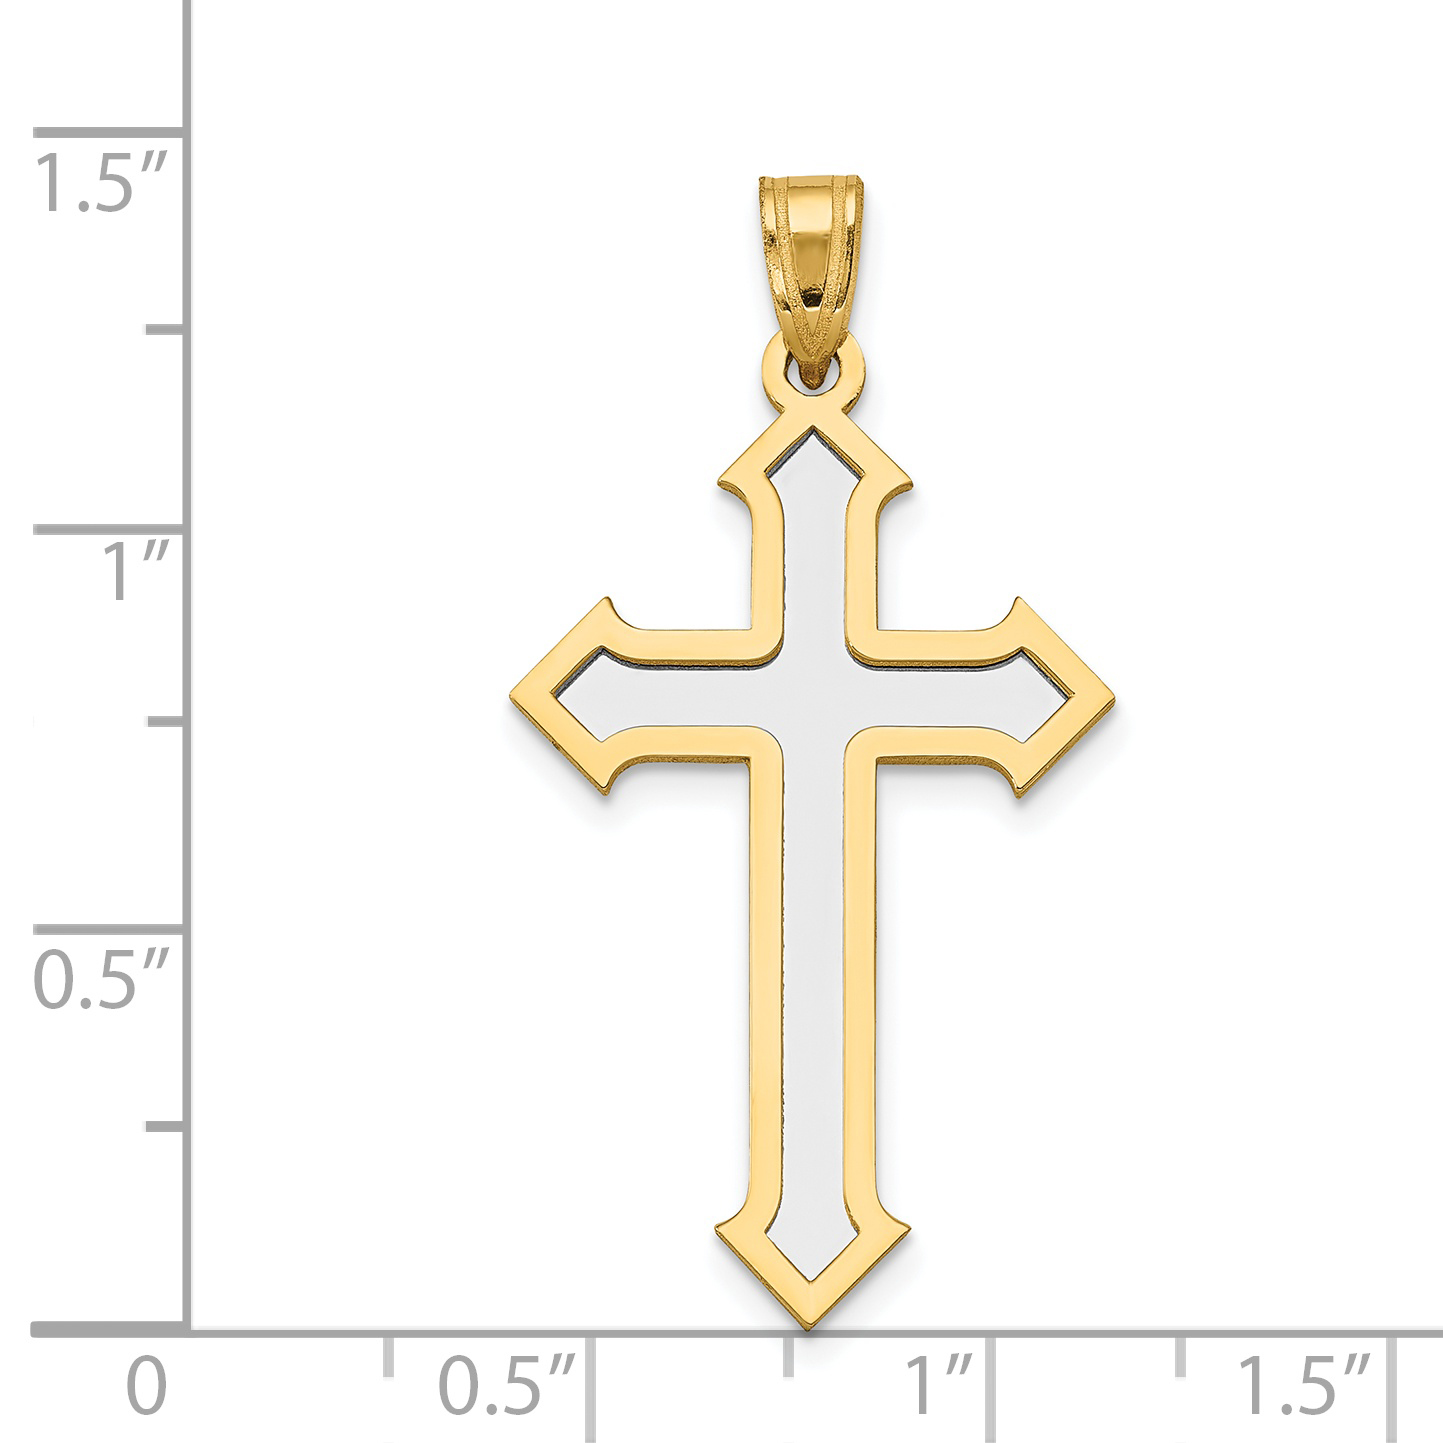 14k Yellow and White Gold Two-tone Passion Cross Pendant Length 36mm - image 1 de 2